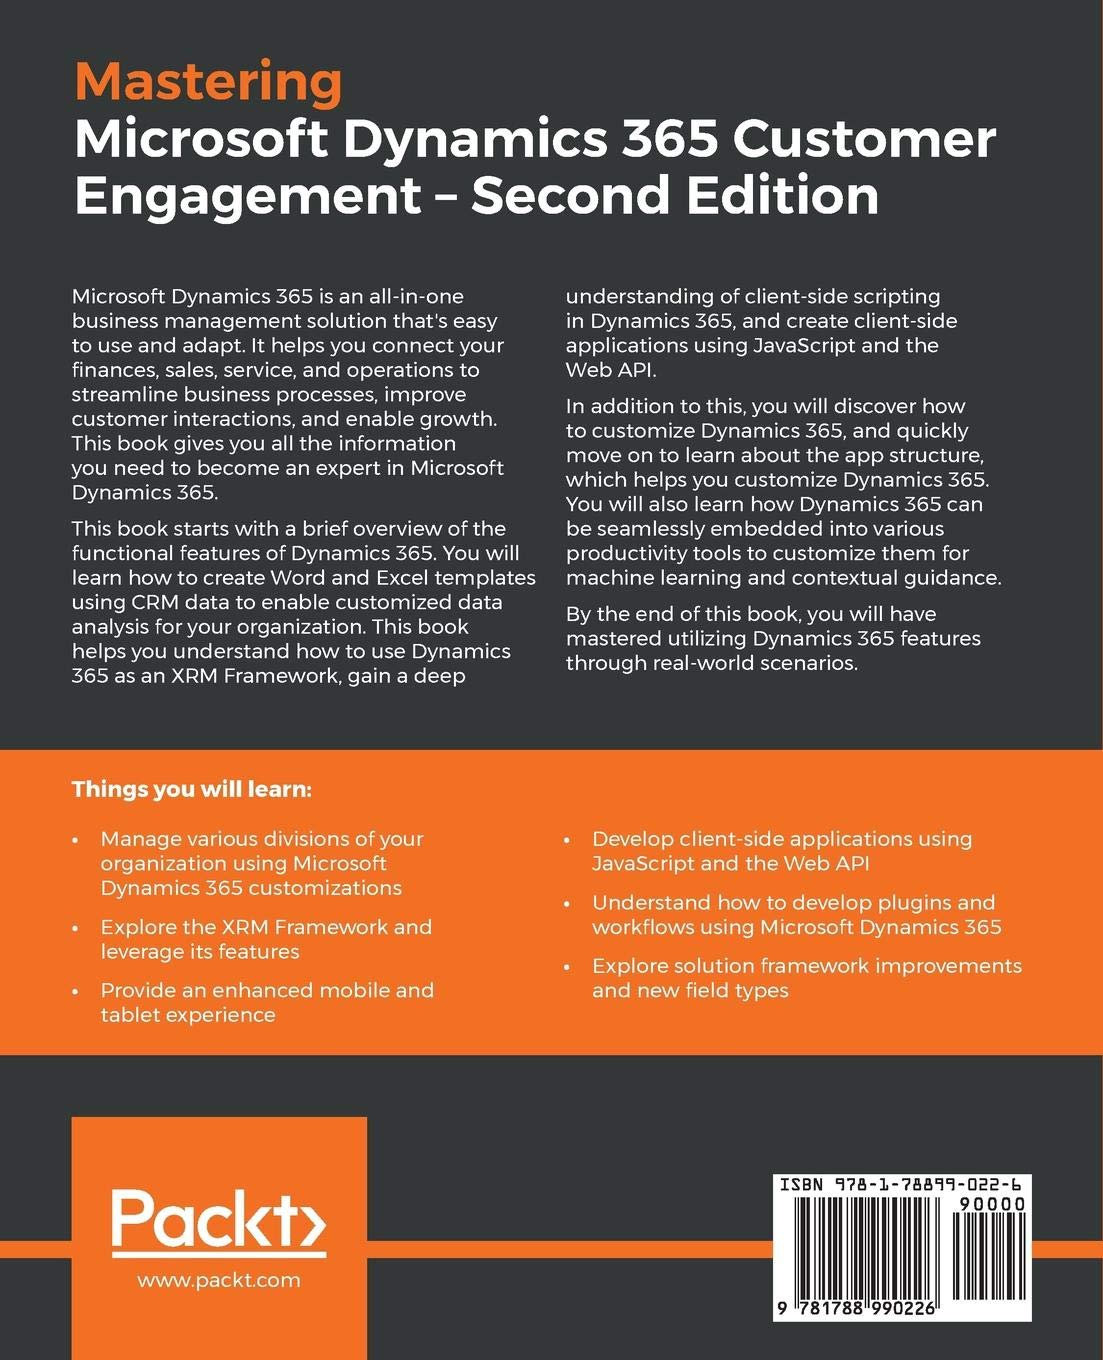 Mastering Microsoft Dynamics 365 Customer Engagement: An advanced